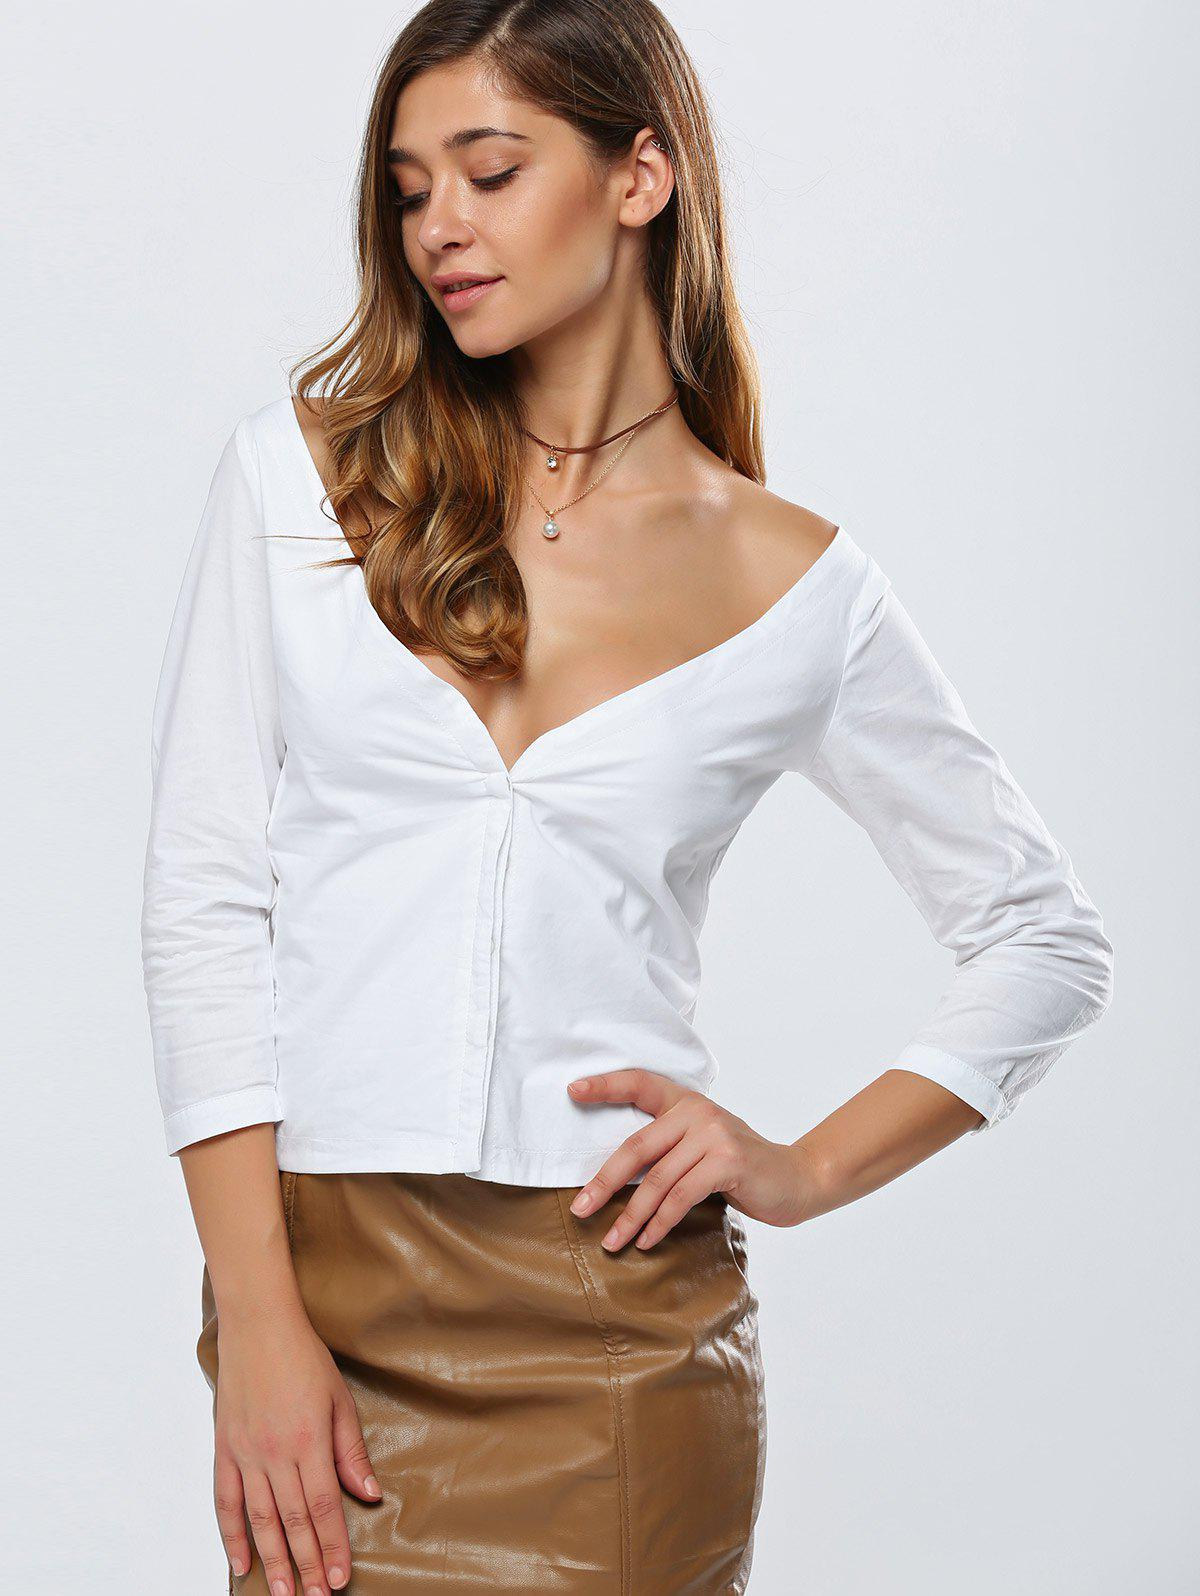 Are you looking for Very Low Cut Blouses Tbdress is a best place to buy Blouses. Here offers a fantastic collection of Very Low Cut Blouses, variety of styles, colors to suit you. All of items have the lowest price for you. So visit Tbdress now, you will have a super surprising!